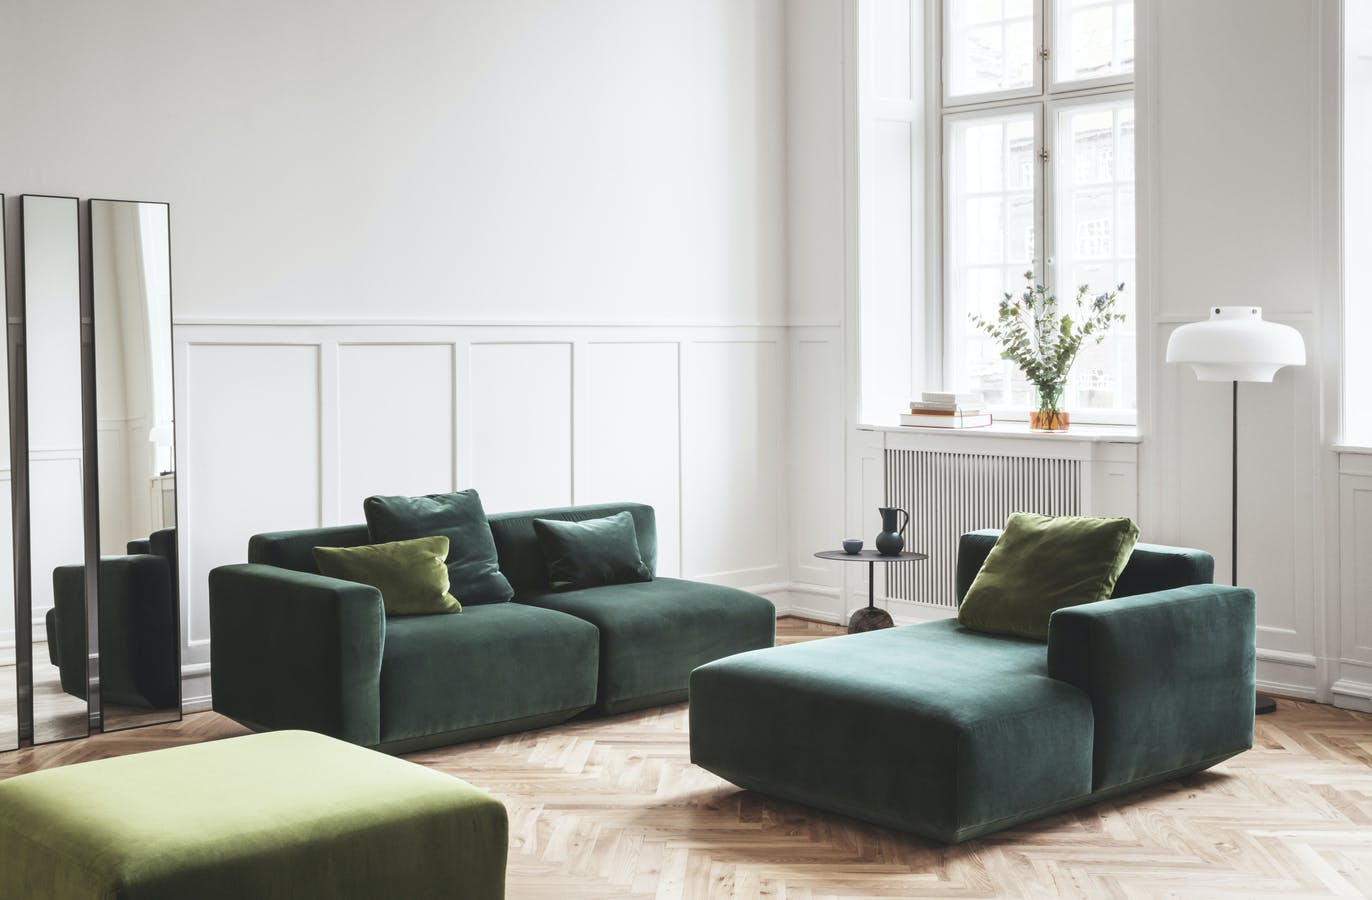 Develius Sofa By Tradition At Haute Living